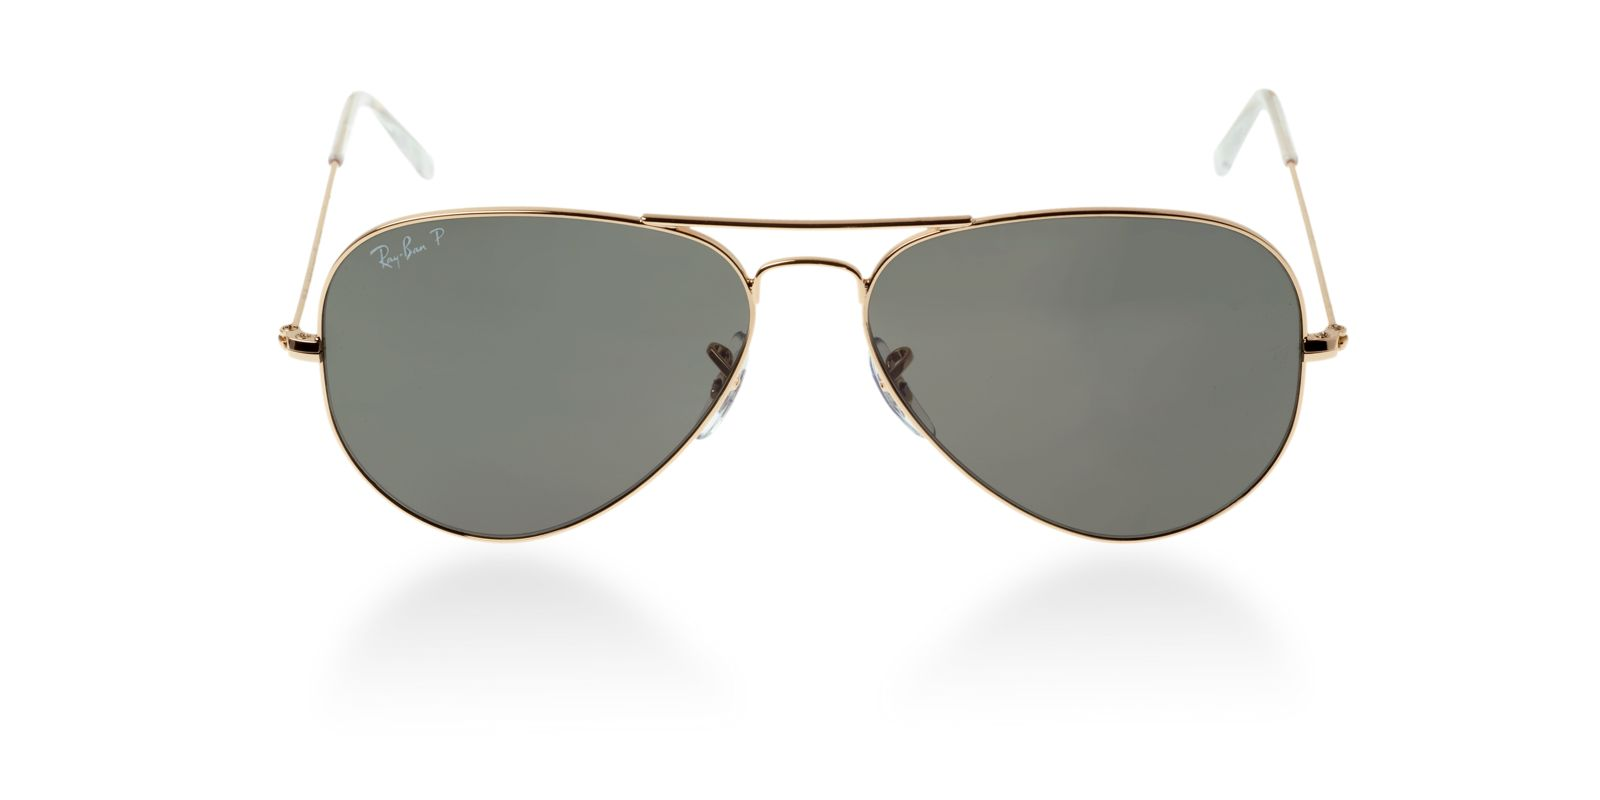 500bfd4da0 Previous  Next. Previous  Next. RAY-BAN RB3025 001 58 GOLD POLARIZED  AVIATOR SUNGLASSES